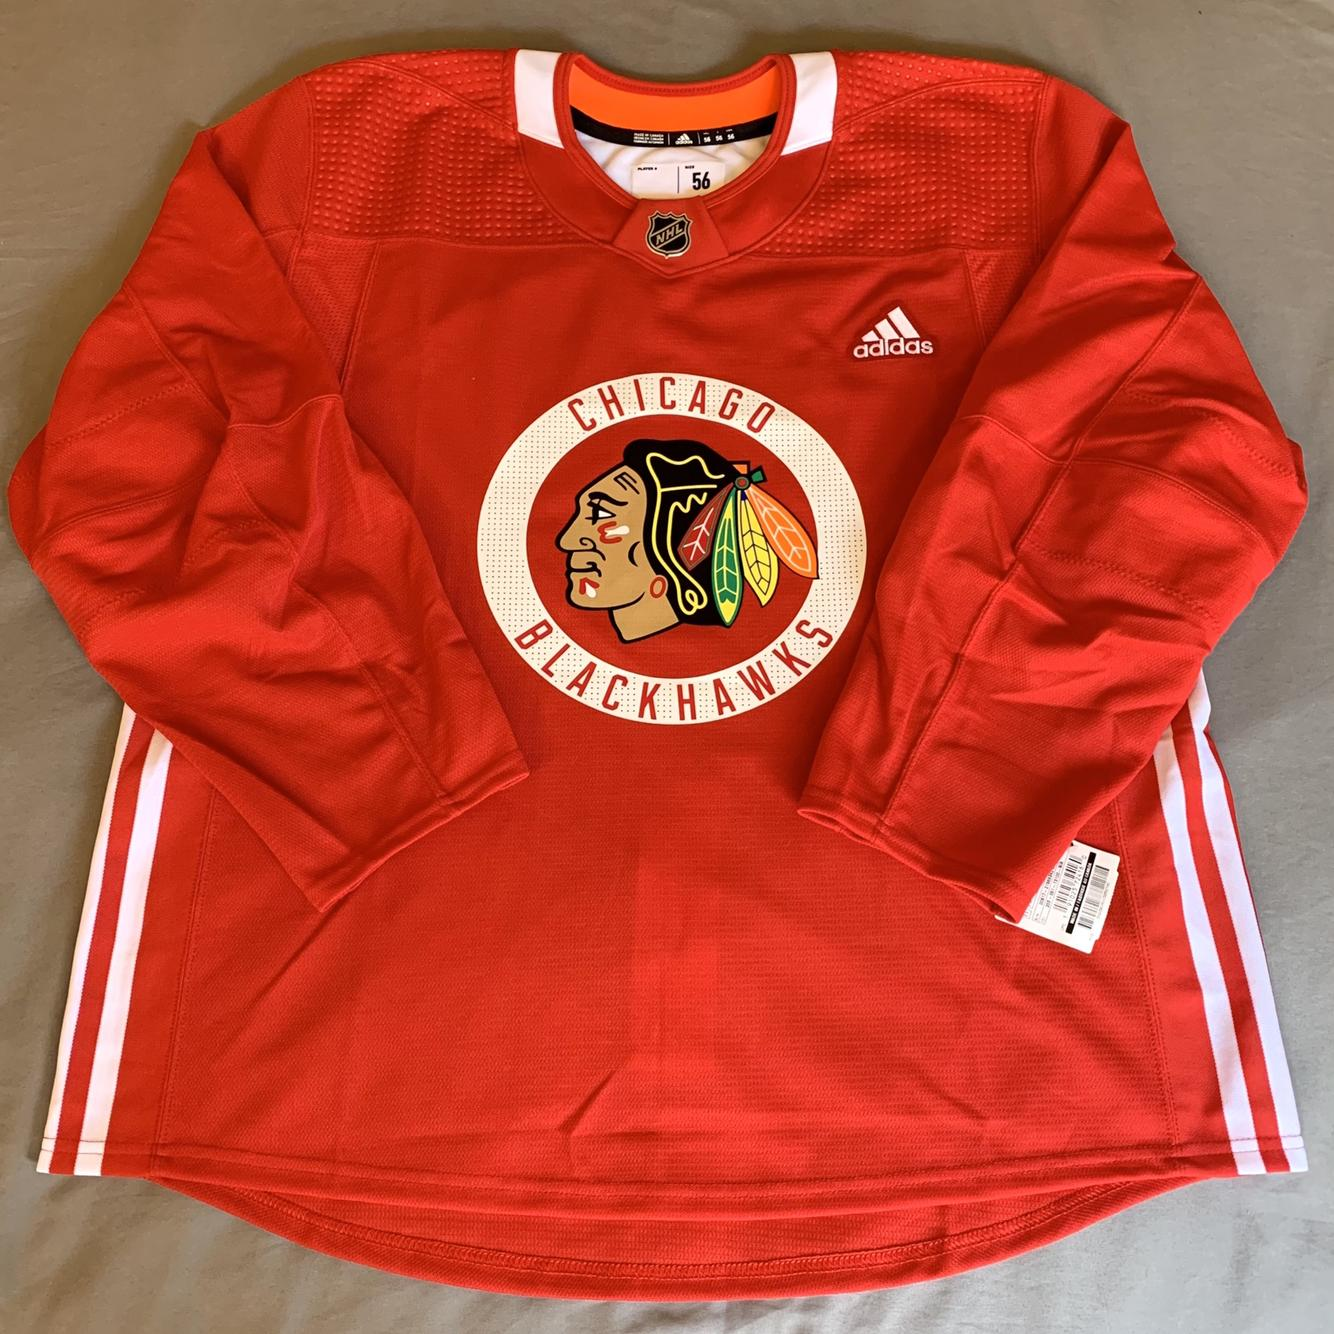 Size 56 Made in Canada Adidas Pro Stock Practice Jersey - Chicago ...